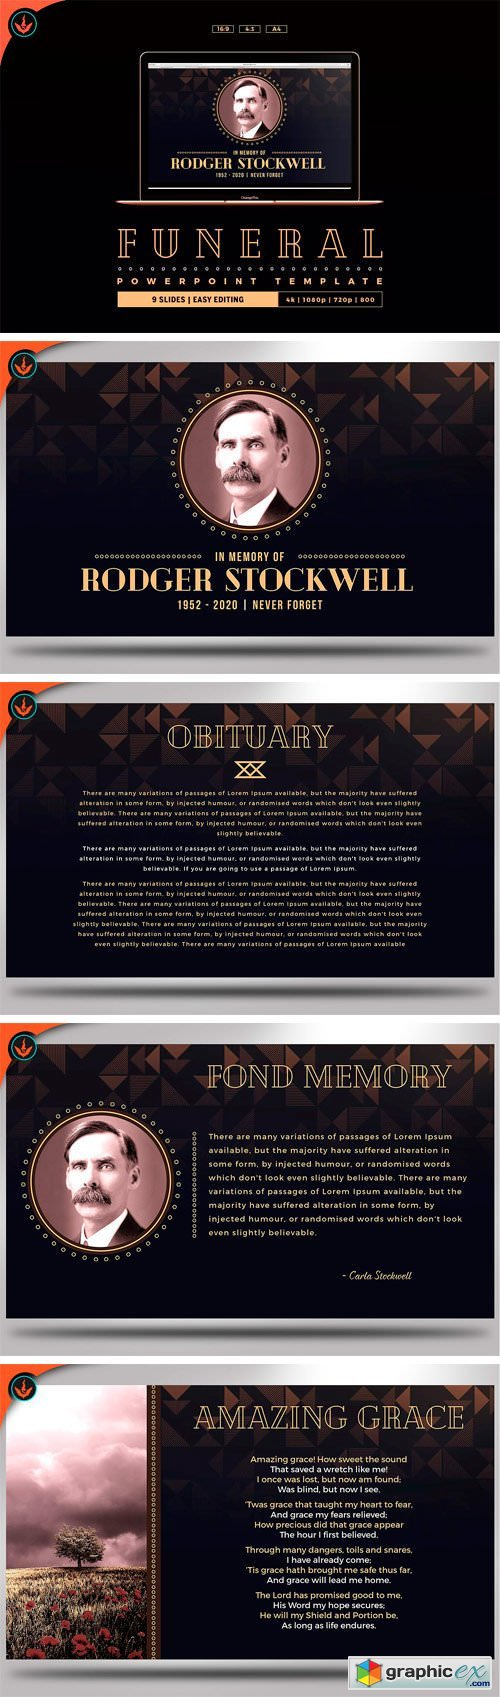 Art deco funeral powerpoint template free download vector stock art deco funeral powerpoint template toneelgroepblik